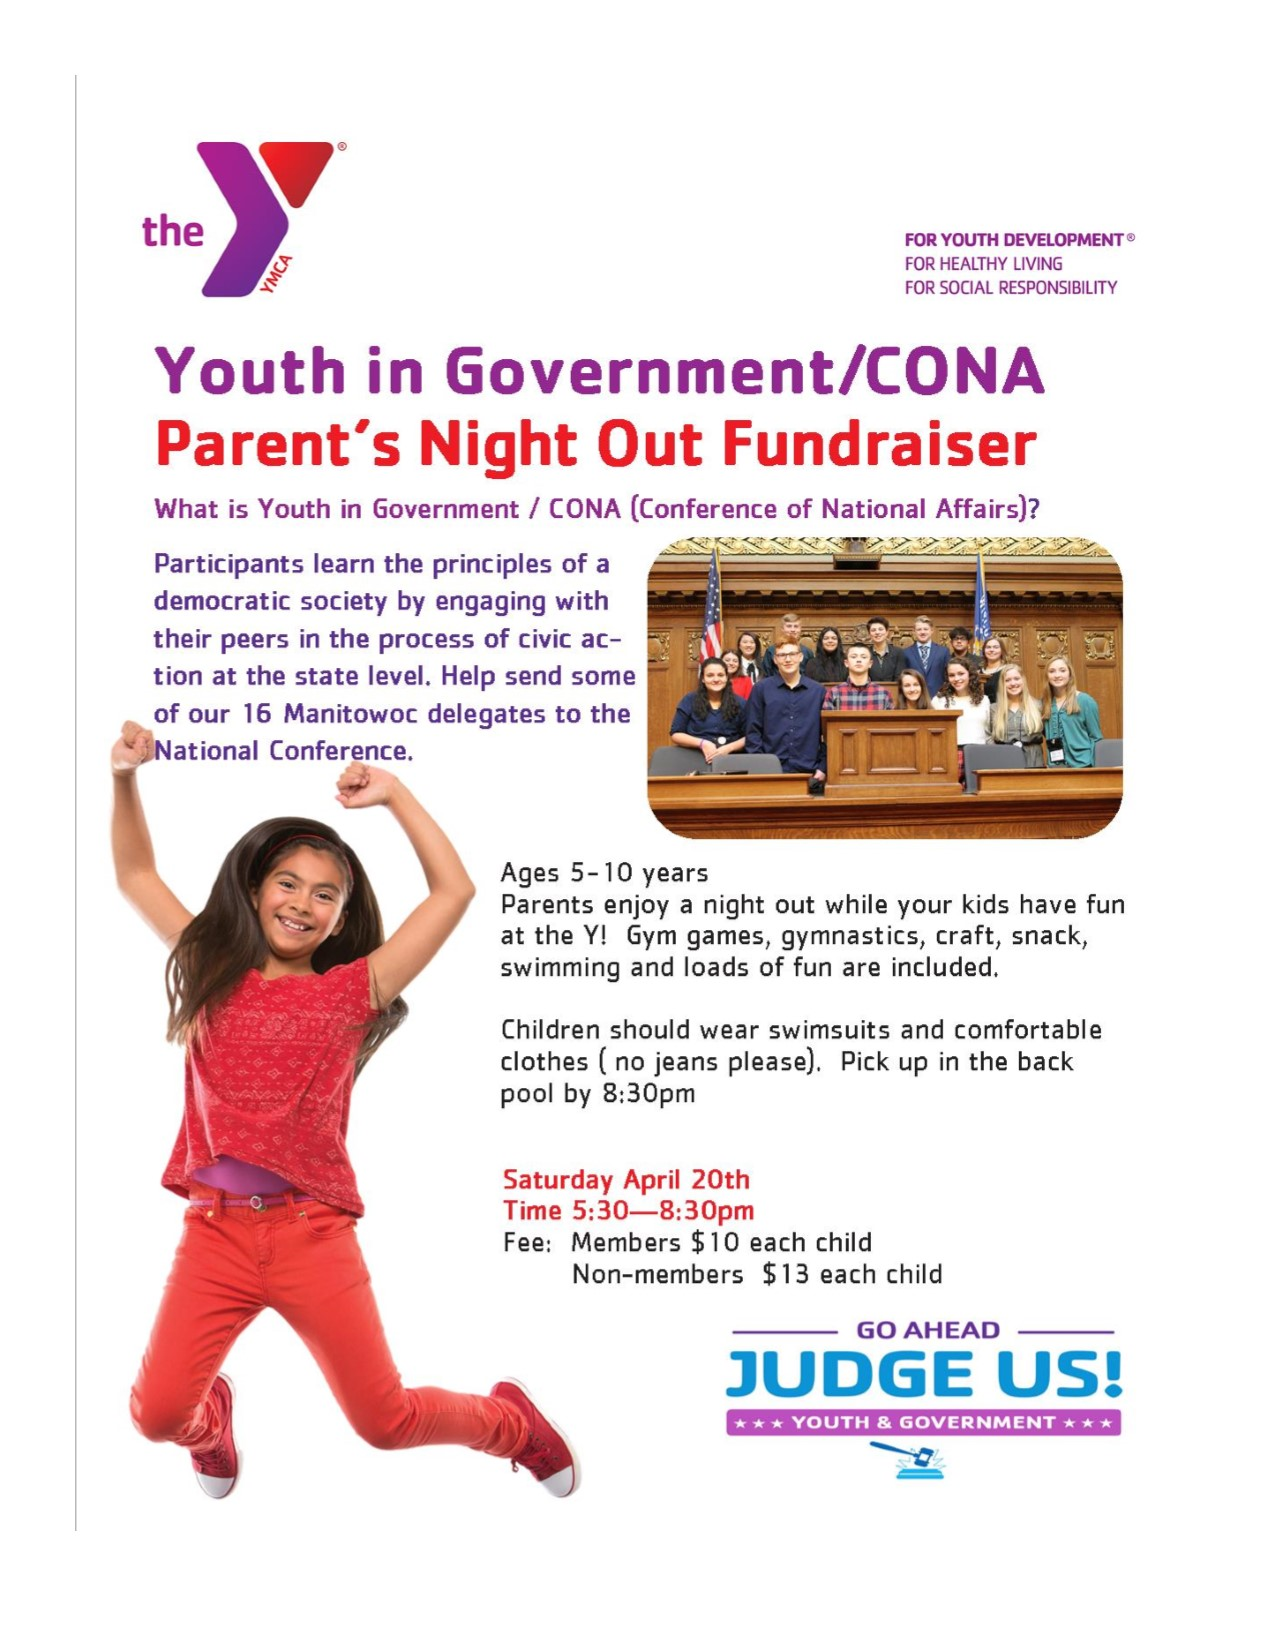 http://mtrymca.org/sites/mtrymca.org/assets/images/programs/Youth-in-Government-Parents-Night-Out-2019.jpg